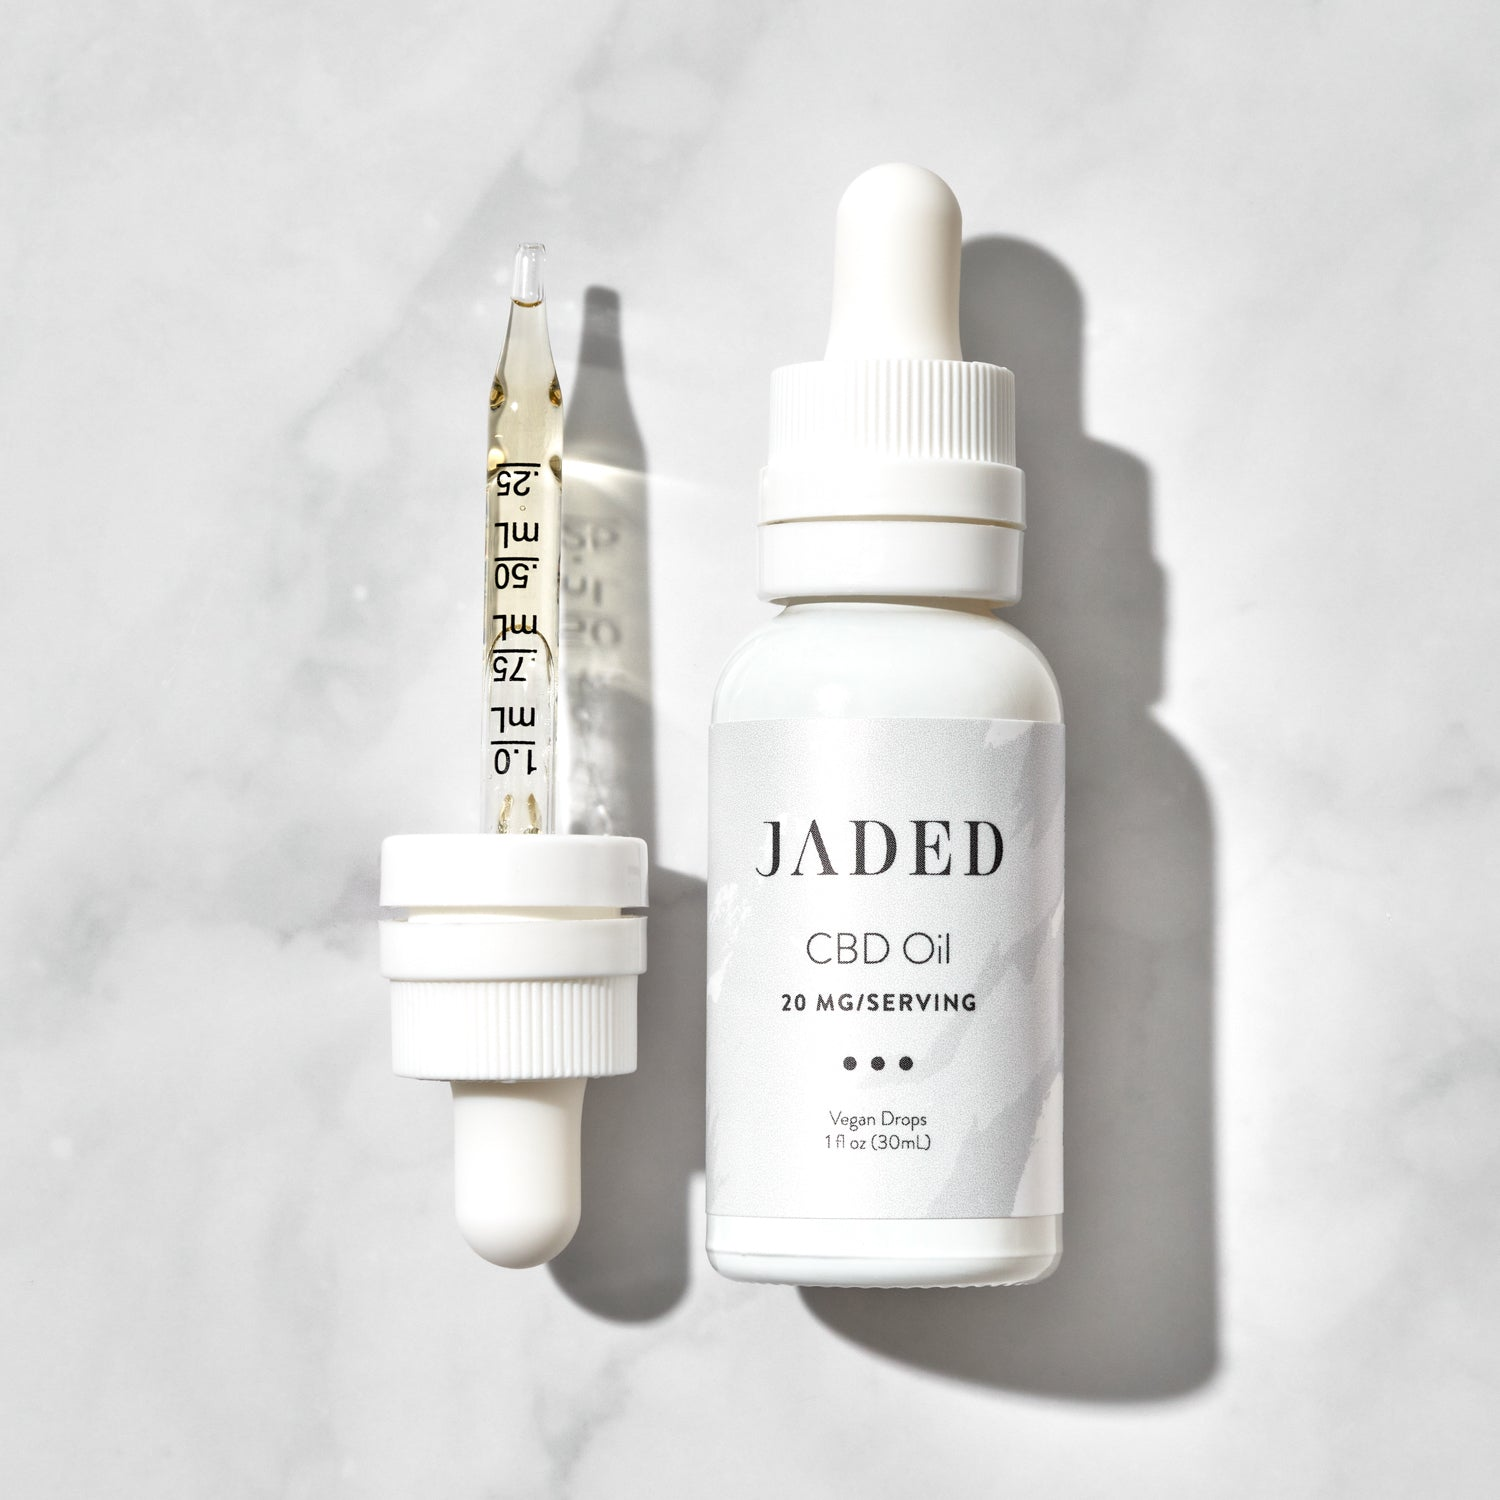 Vegan CBD Oil - Jaded CBD